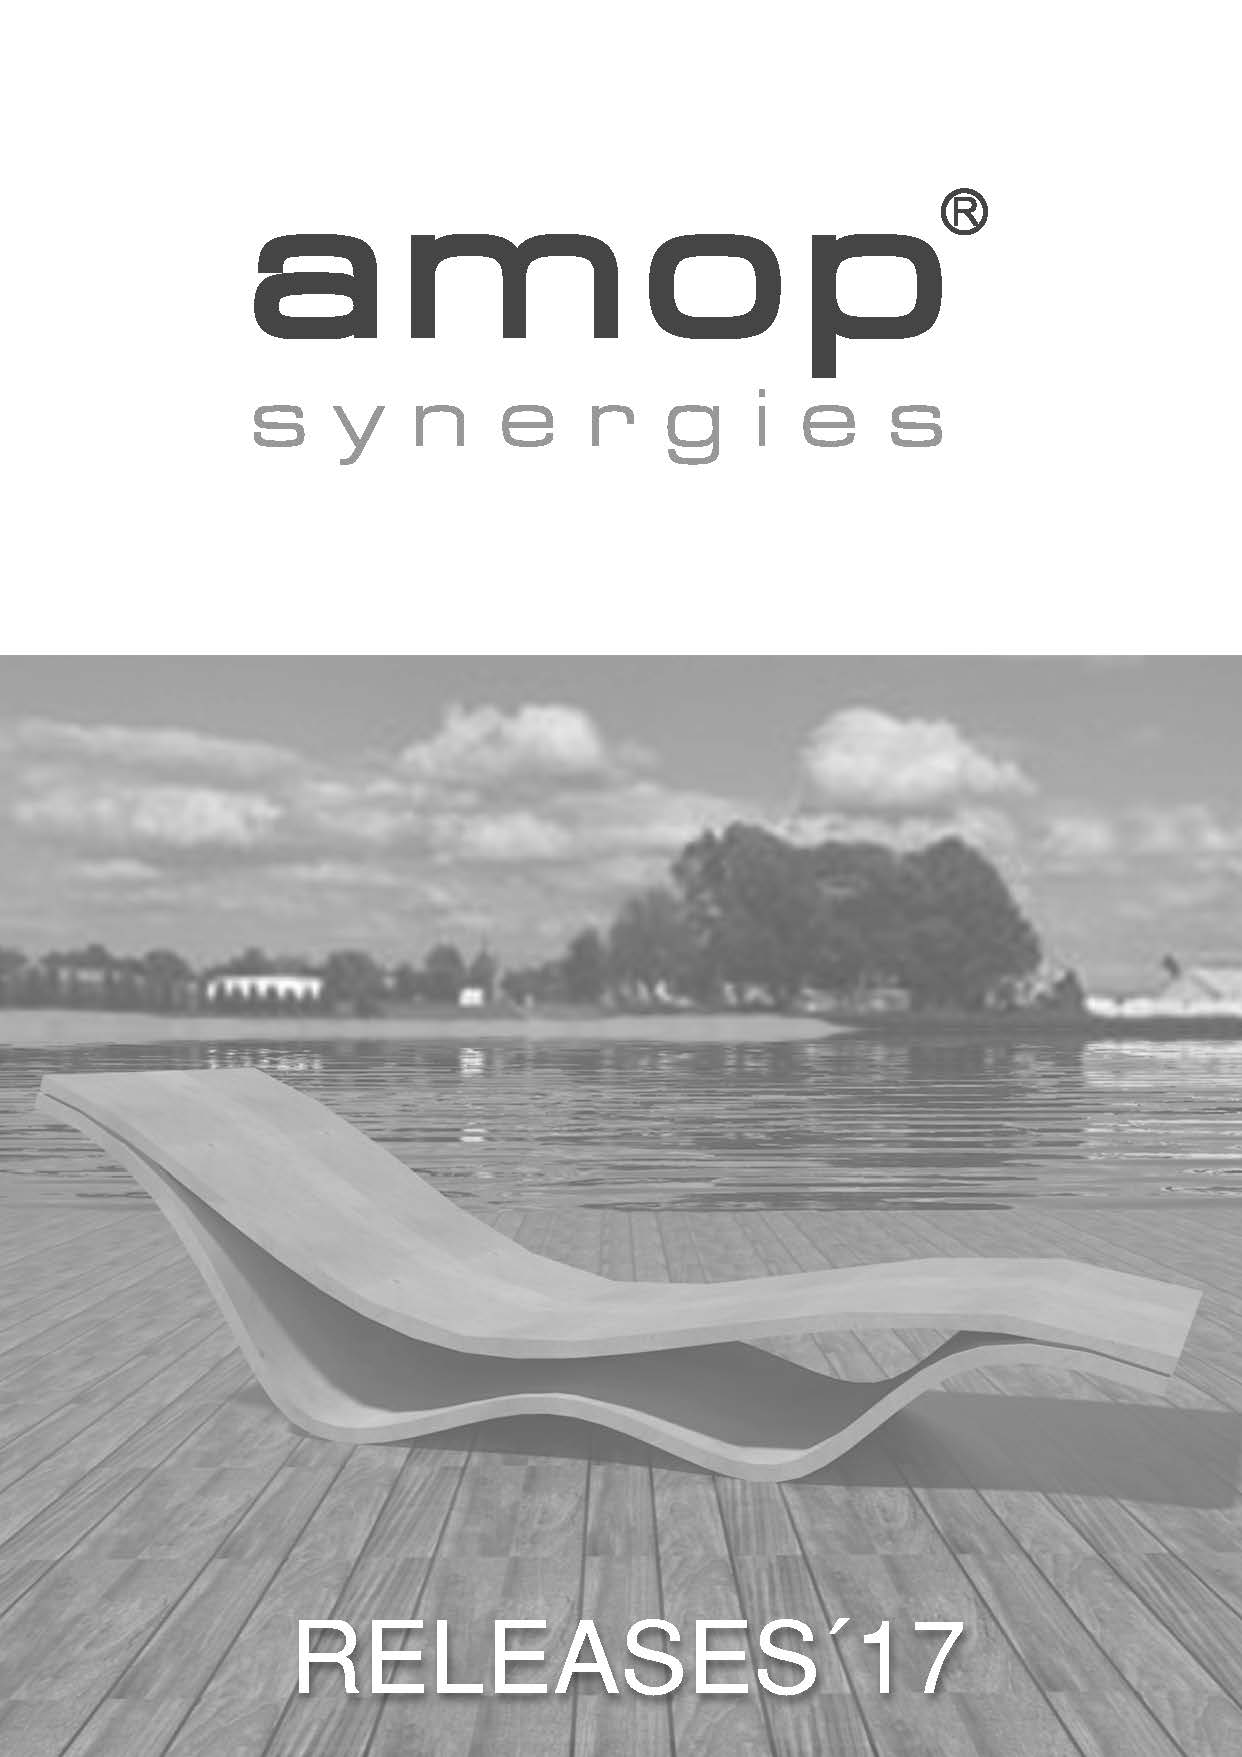 Amop 2017 Releases from Omos